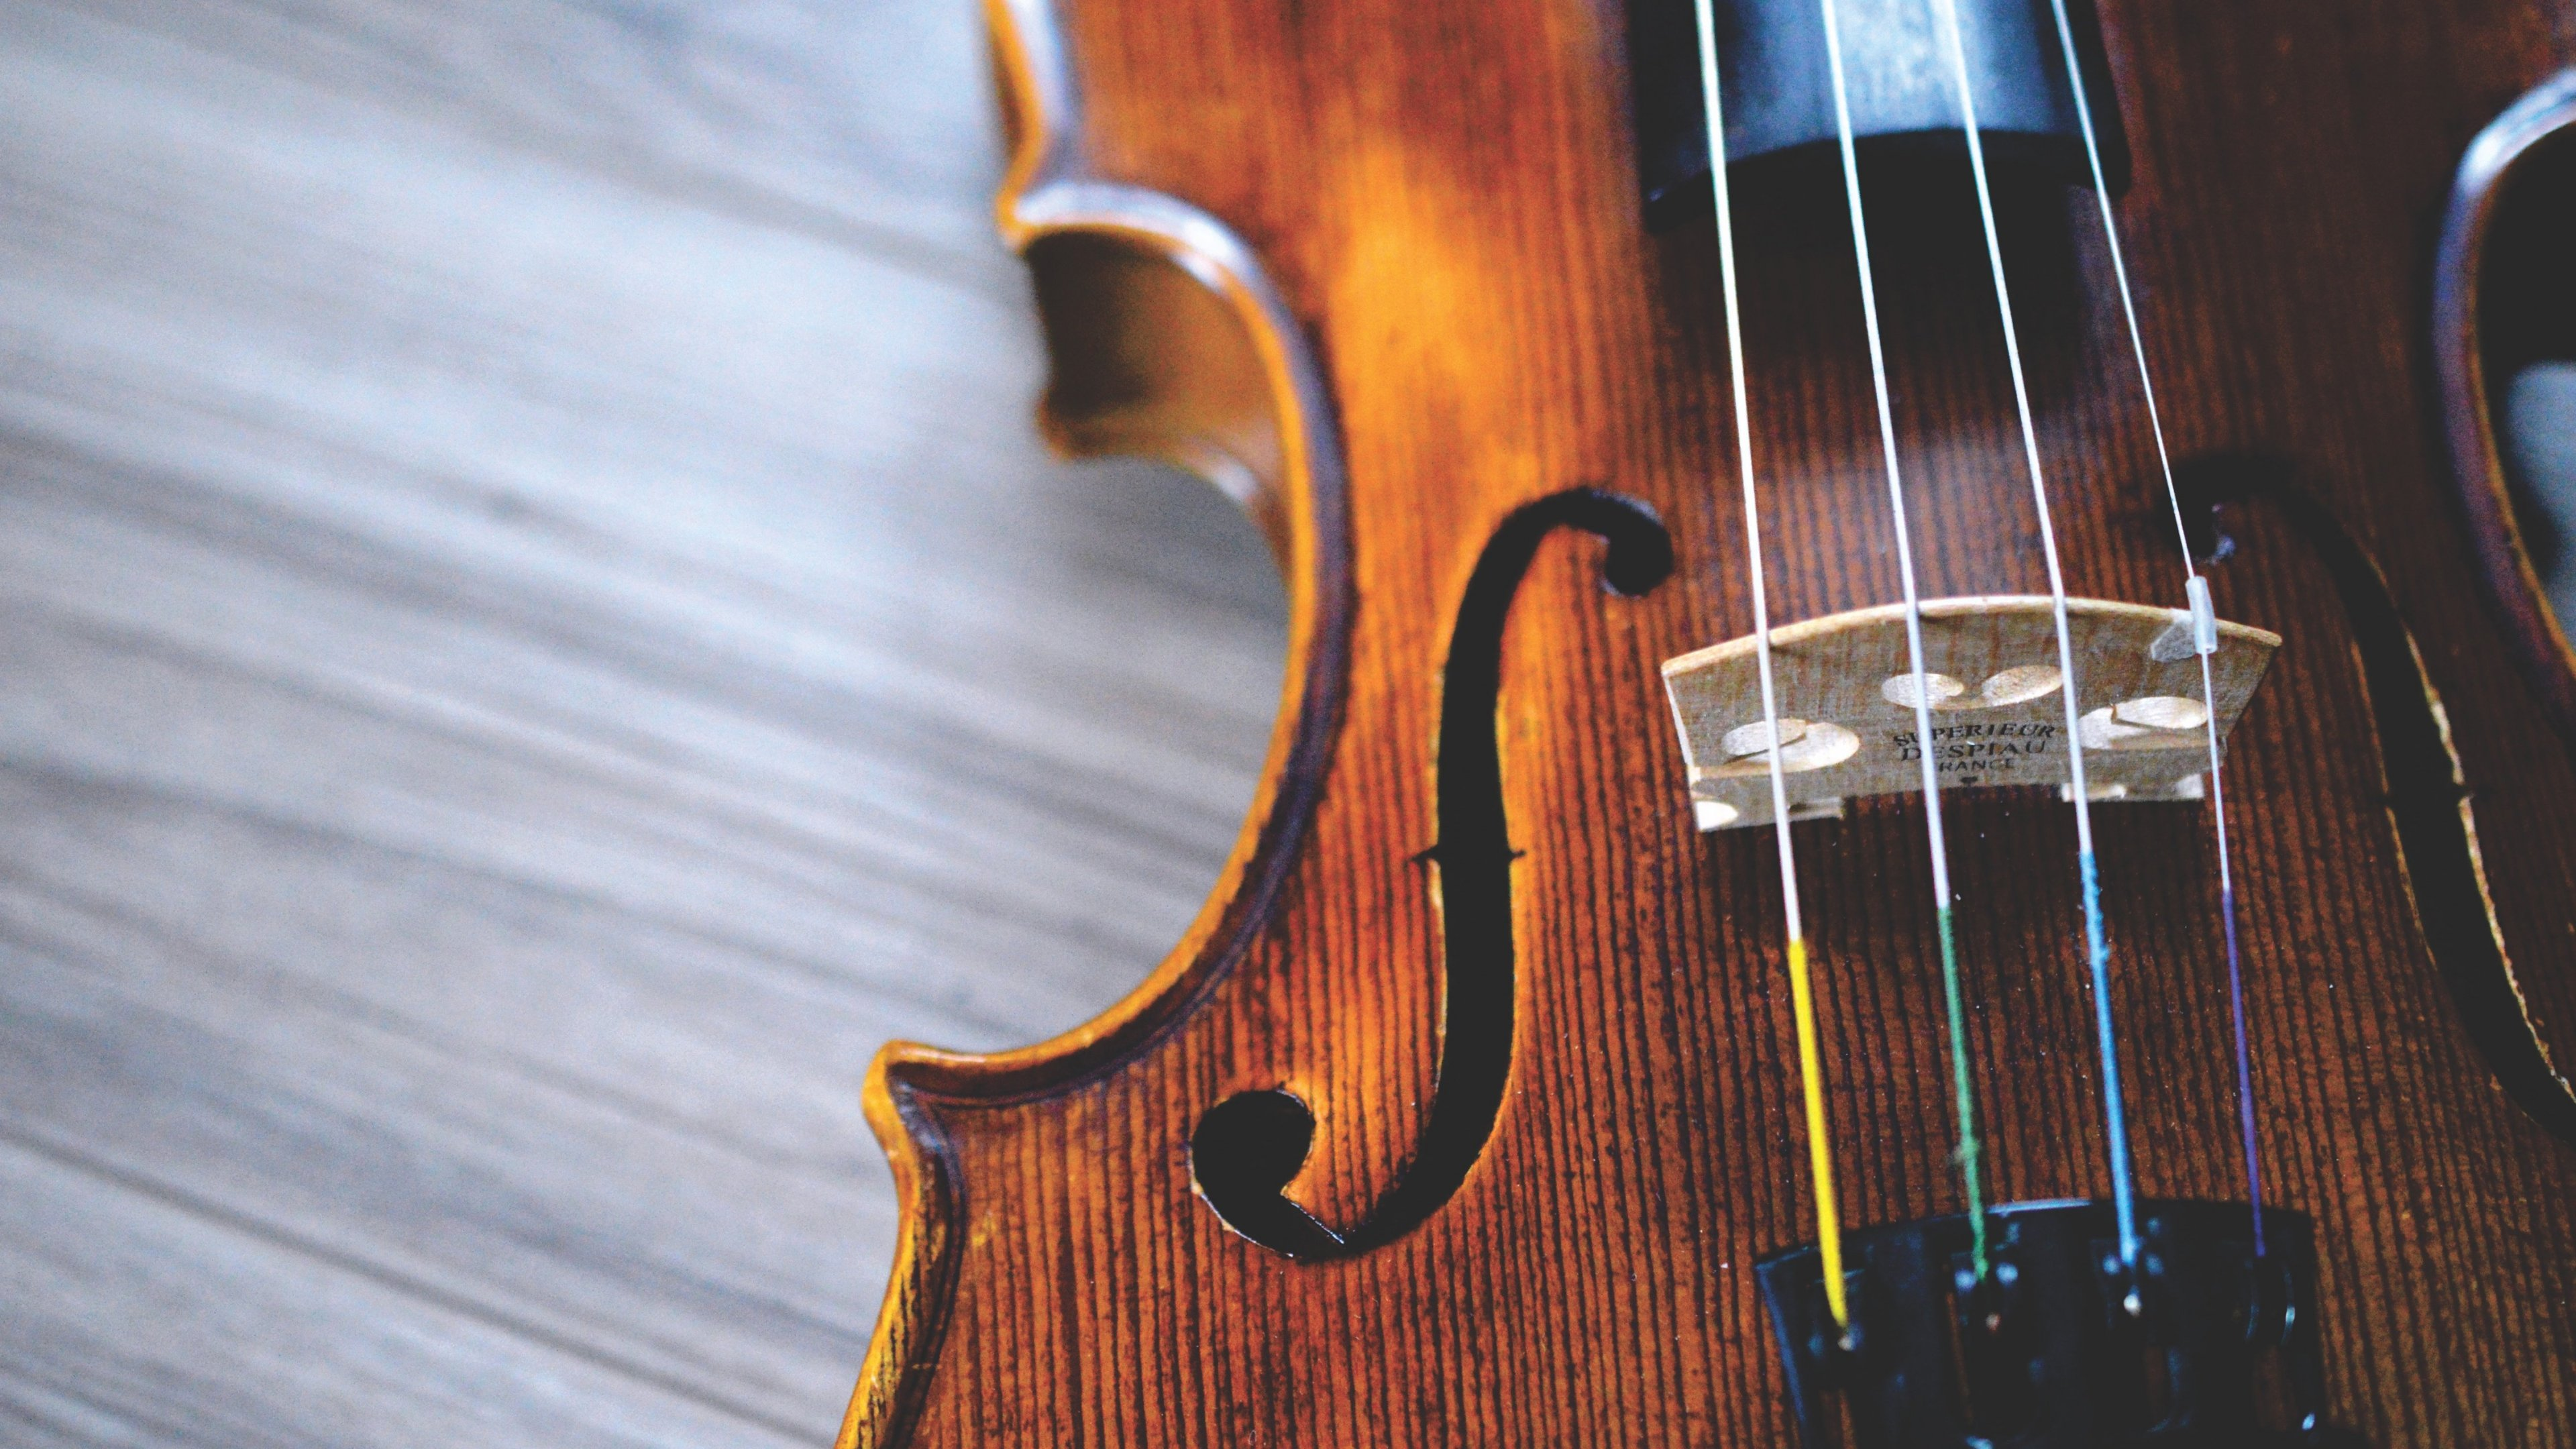 Violin Wallpaper Mobile Desktop Background